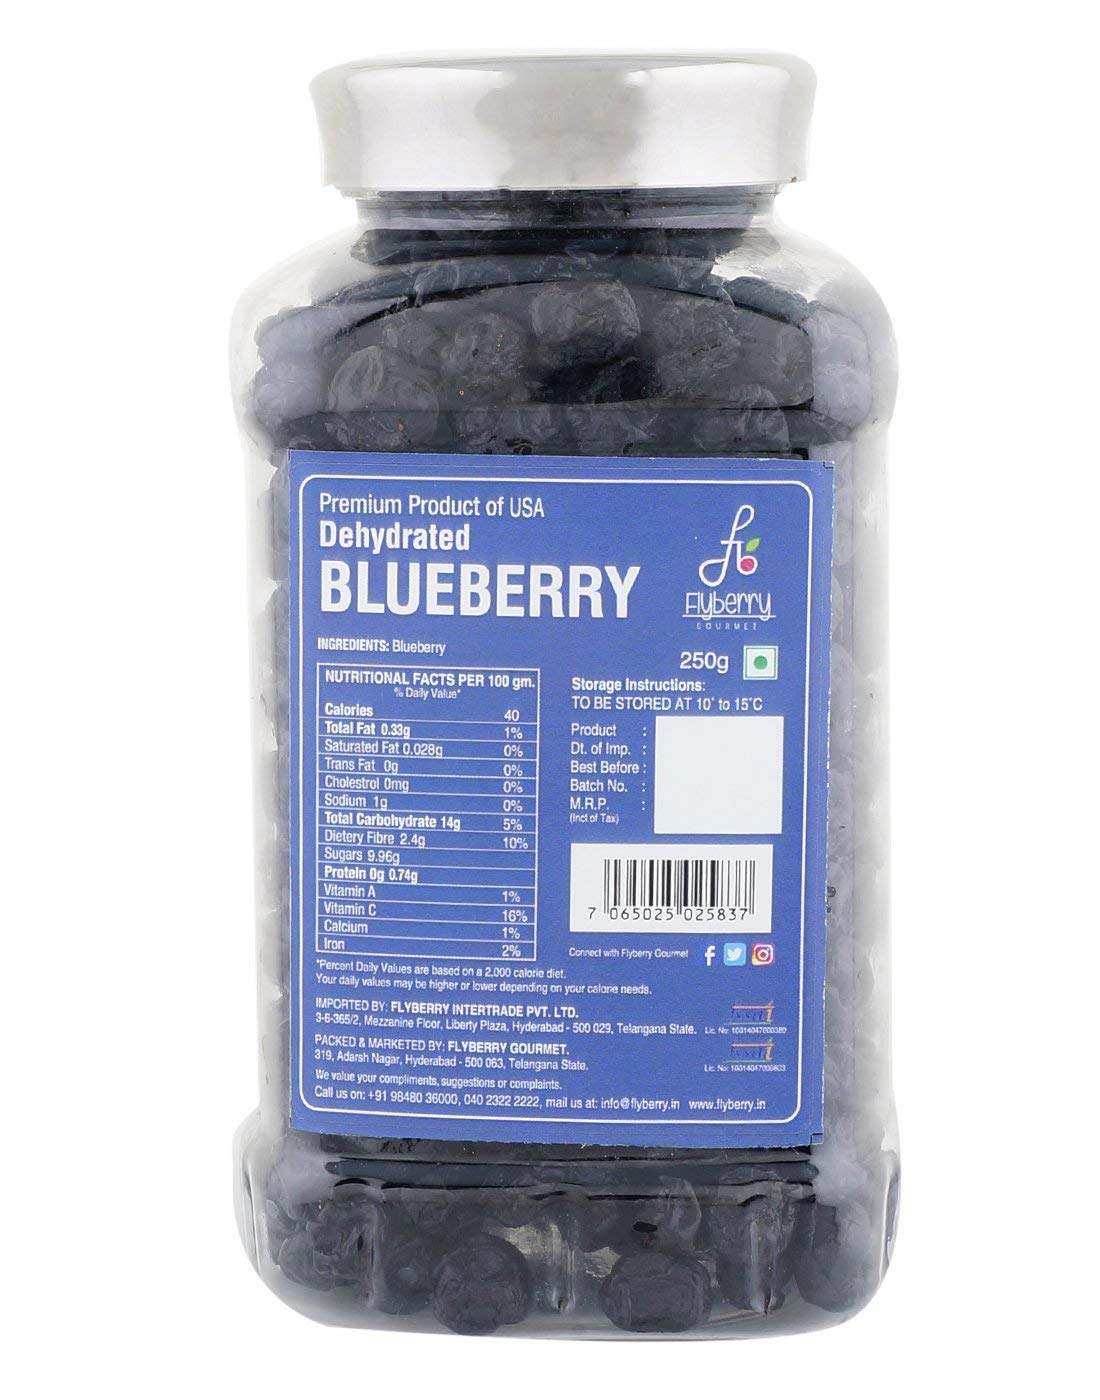 Flyberry Gourmet Dehydrated Blueberry